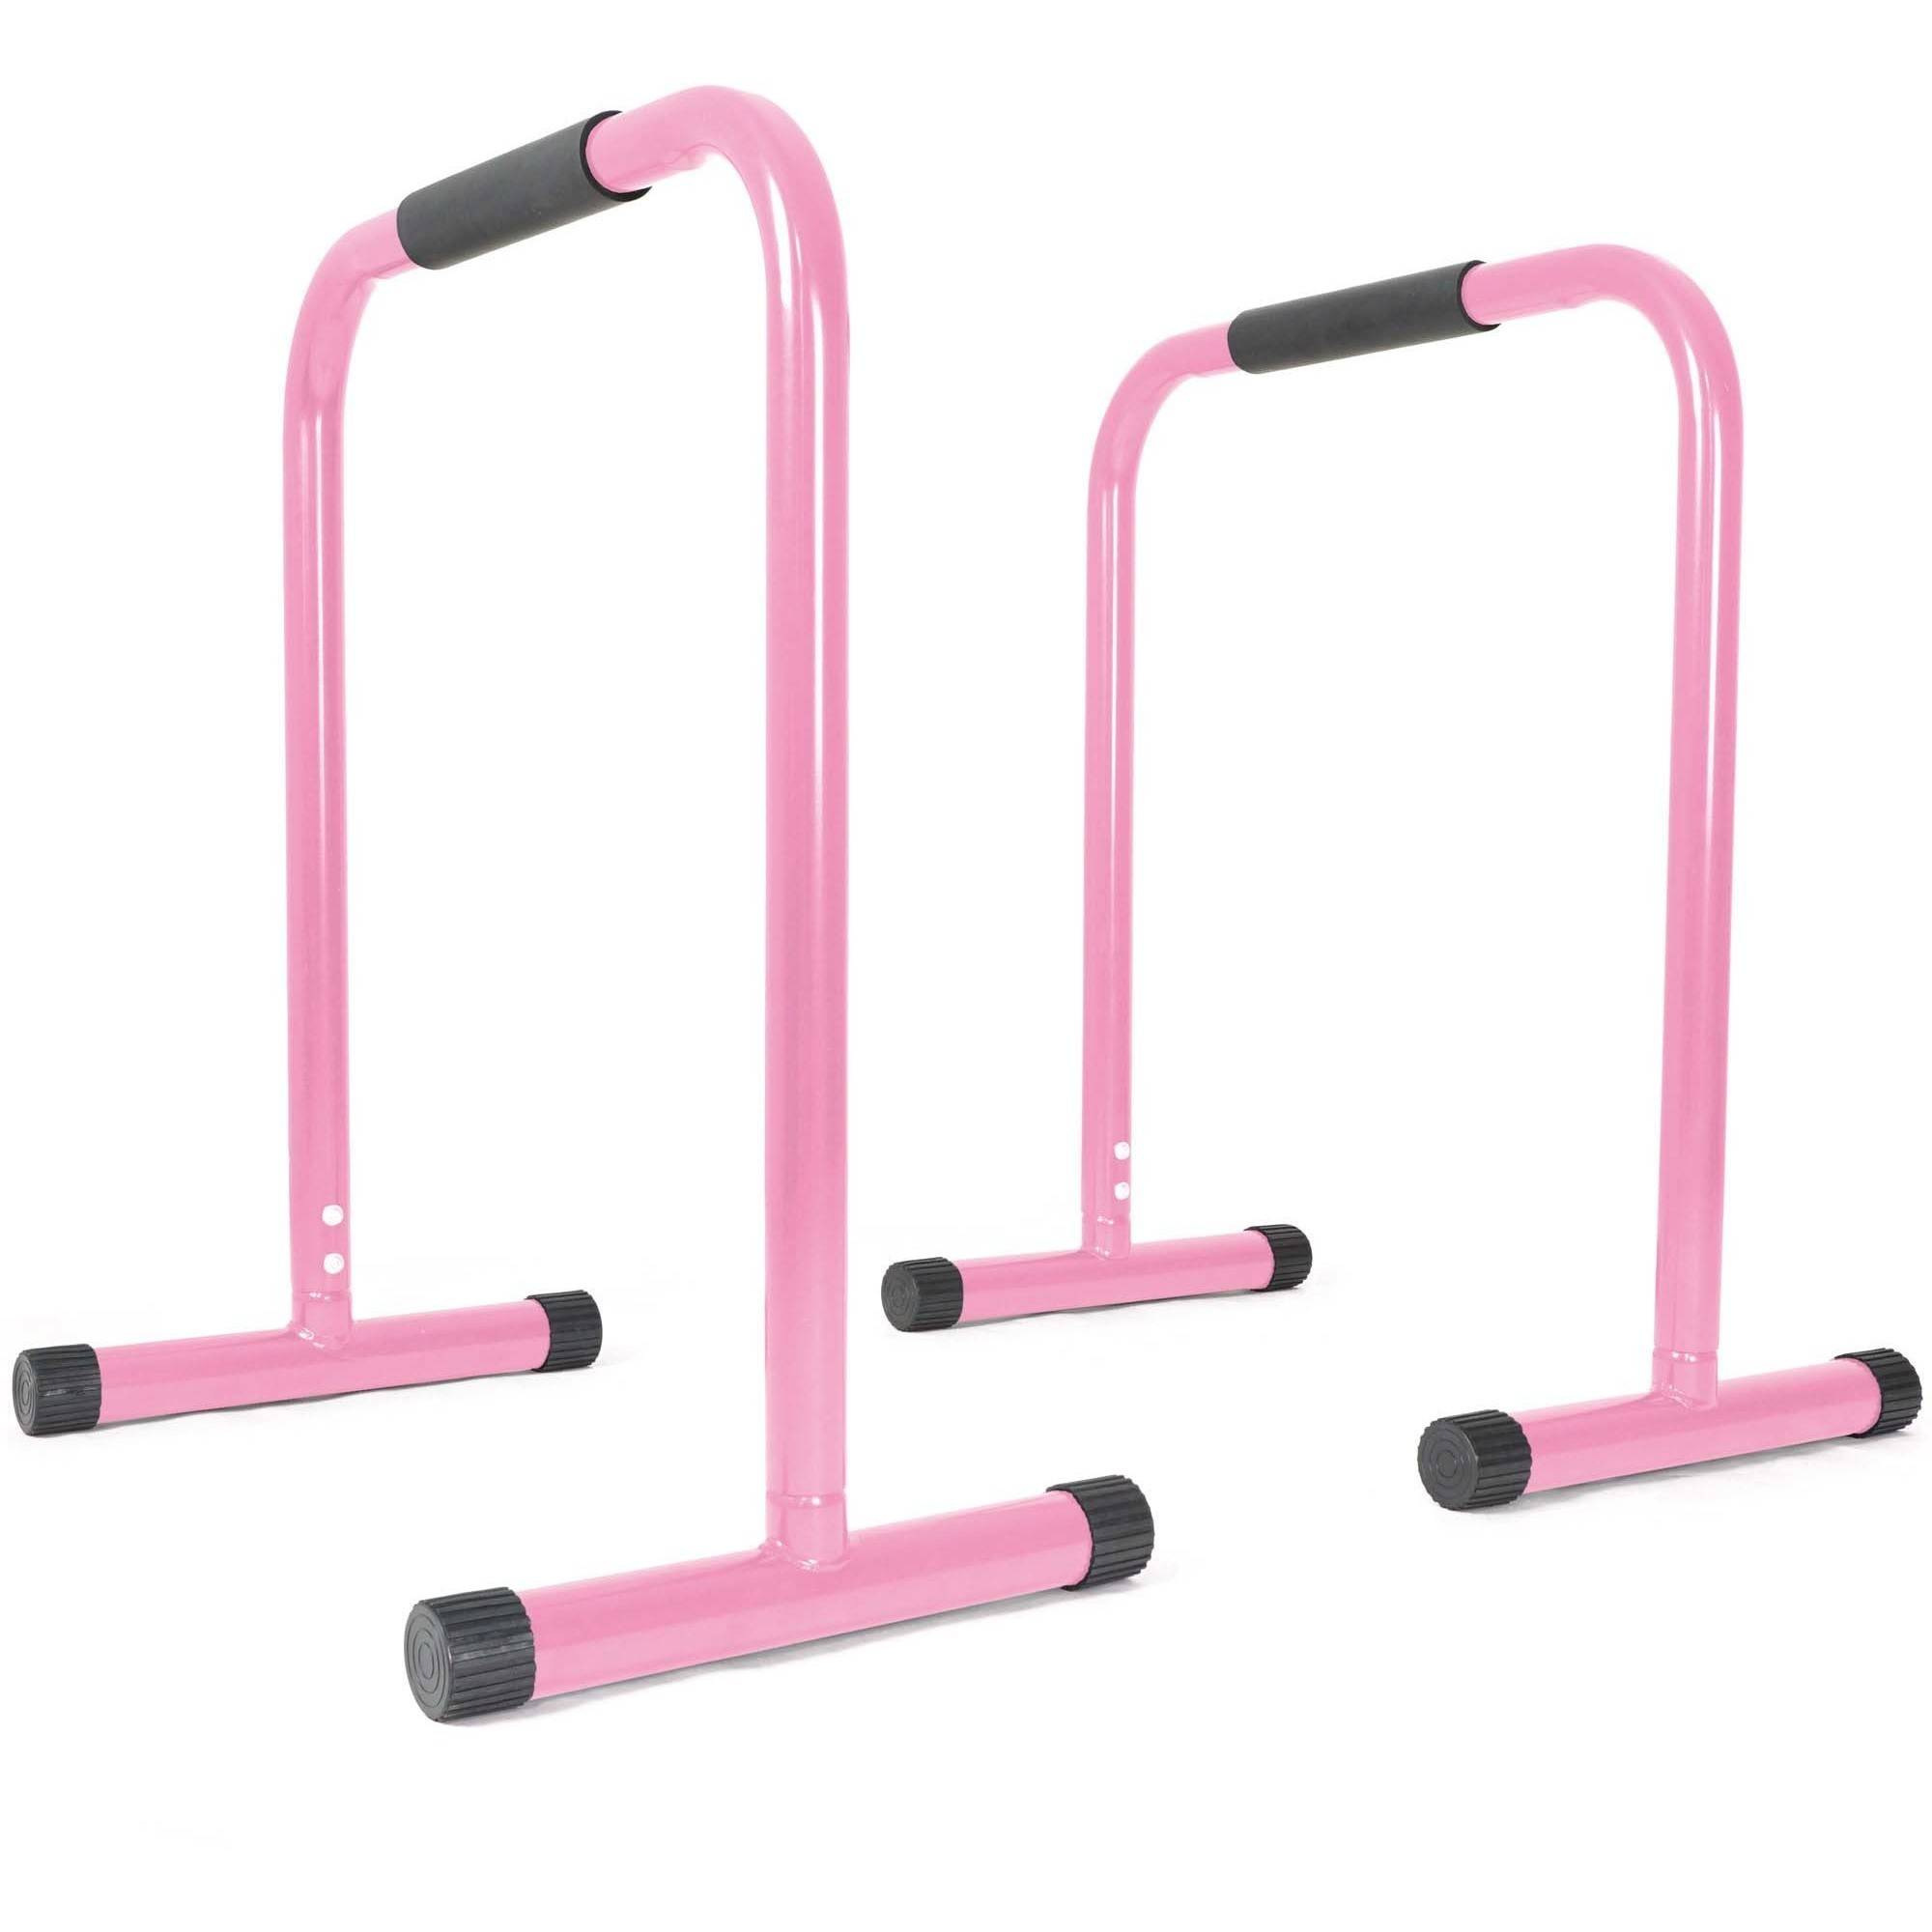 Titan Fitness Pink Dip Station Leg Raise Bars